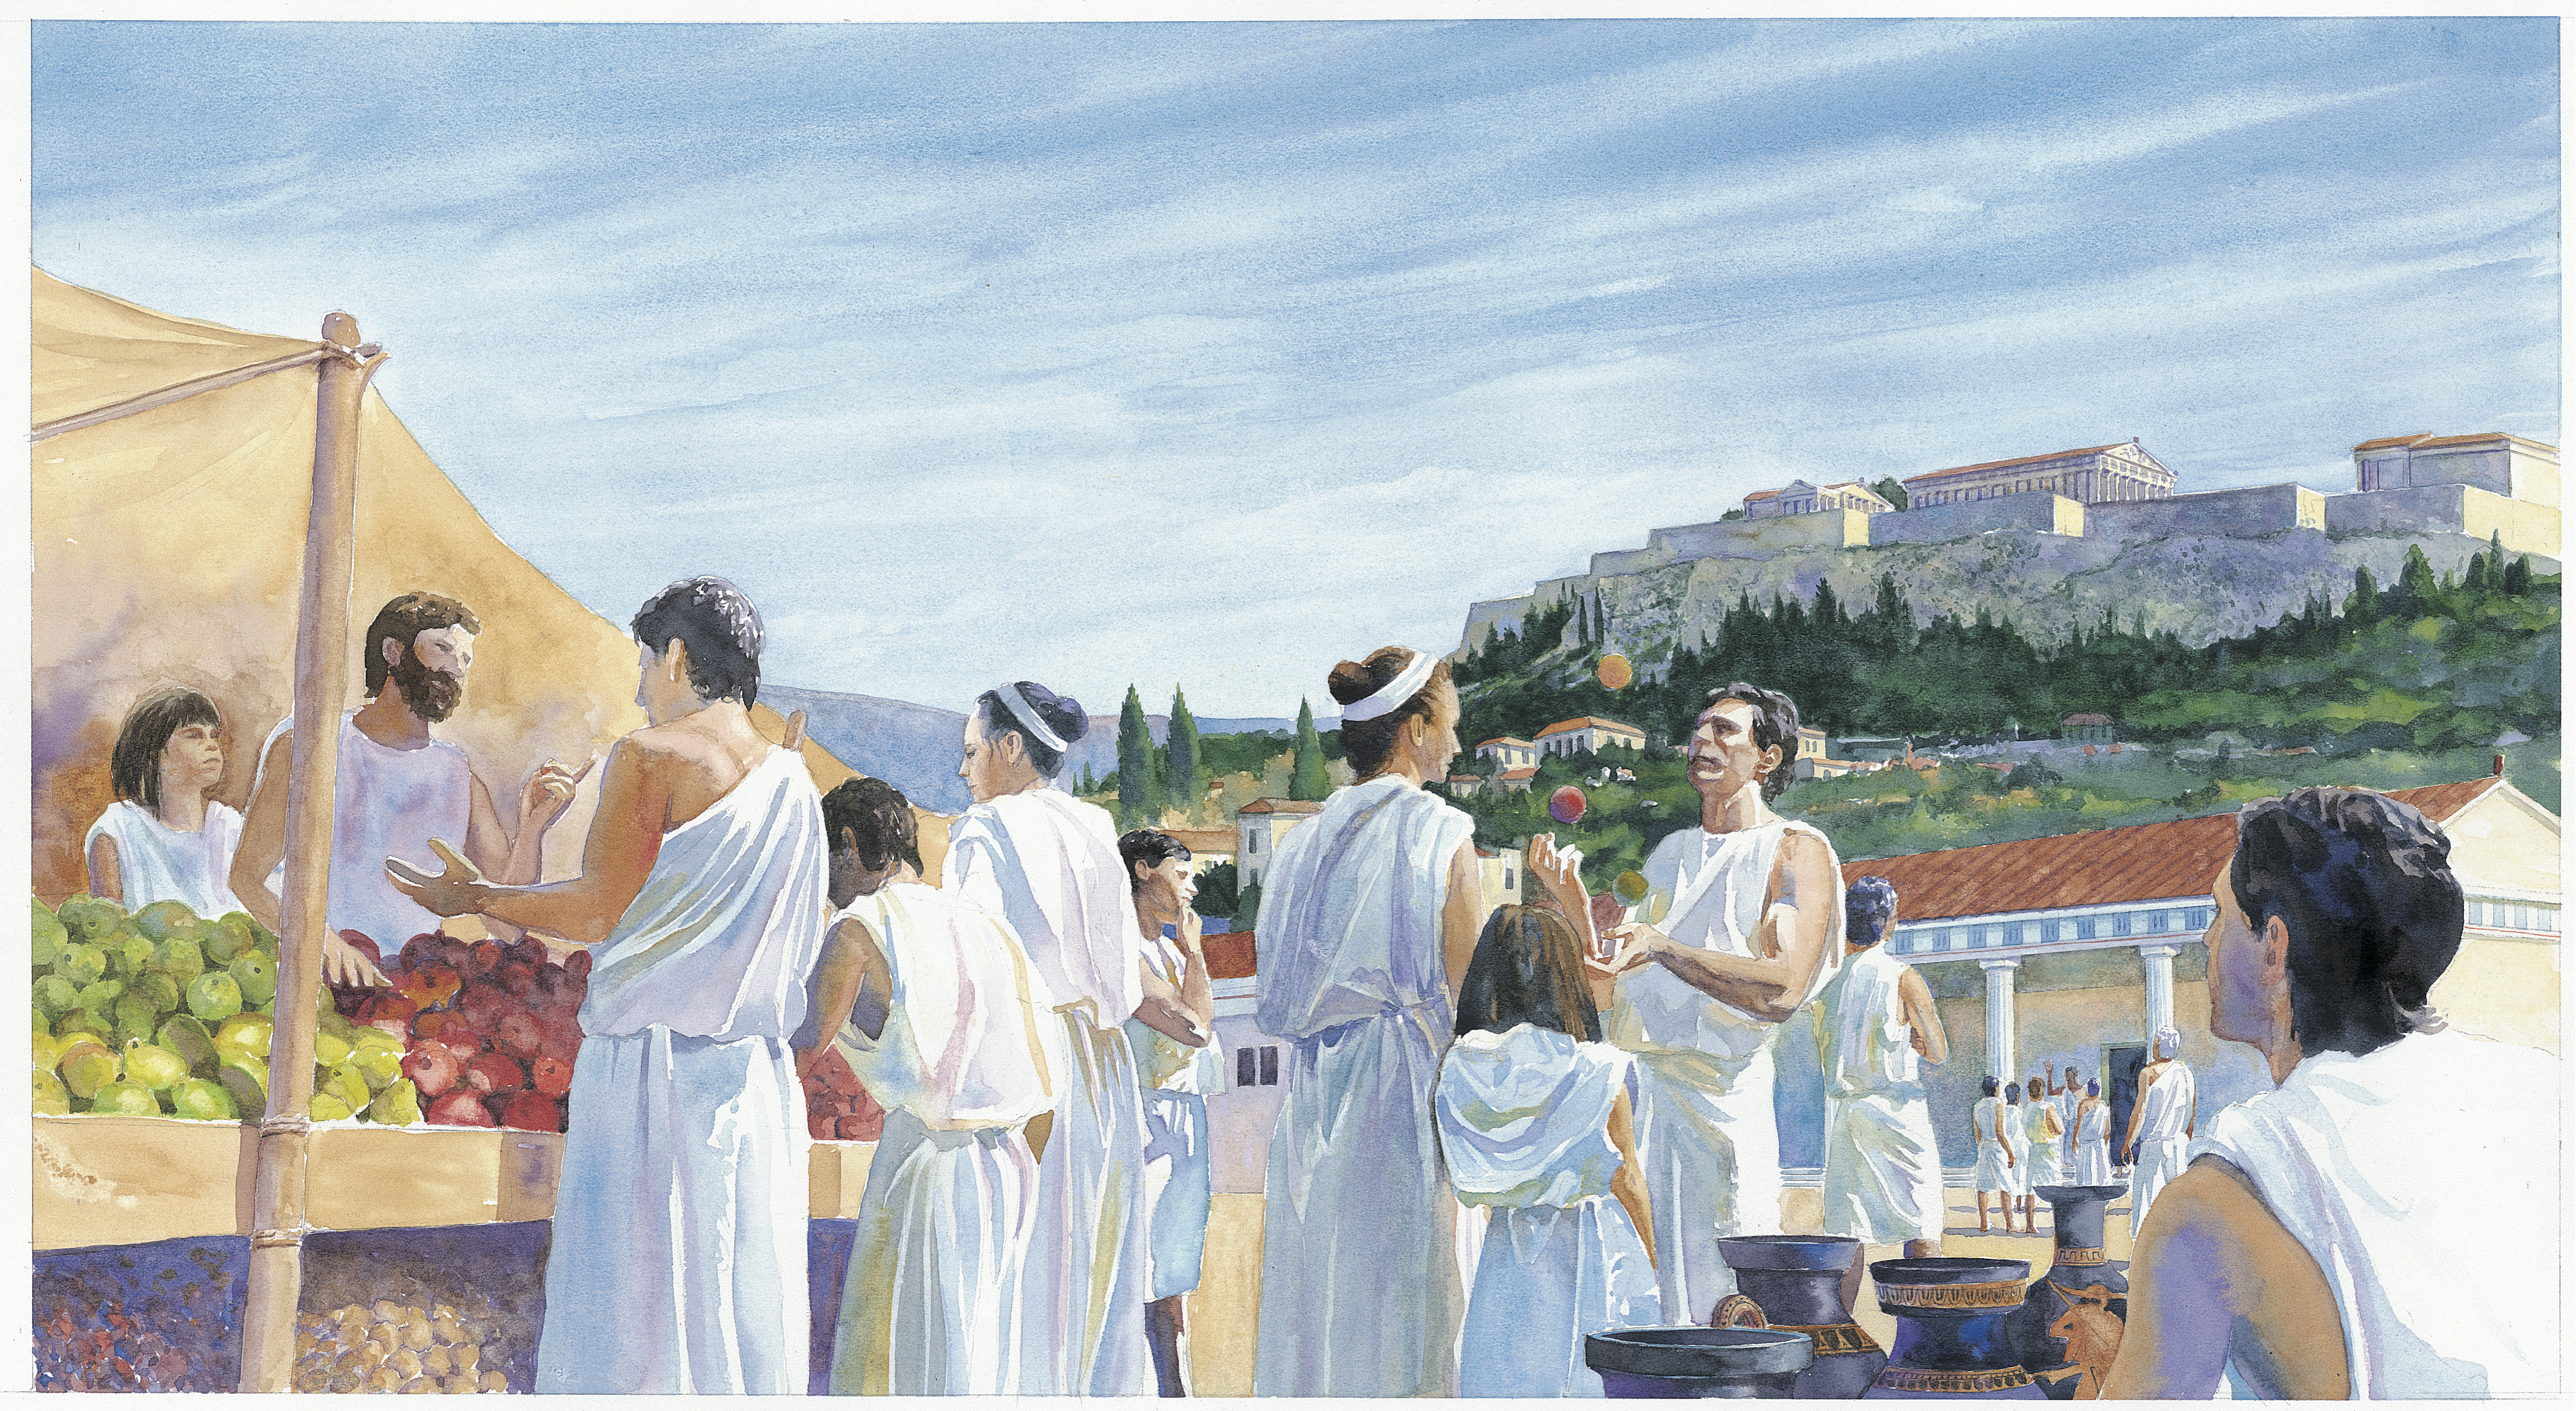 A Rob Wood illustration from Kids Discover Ancient Greece.